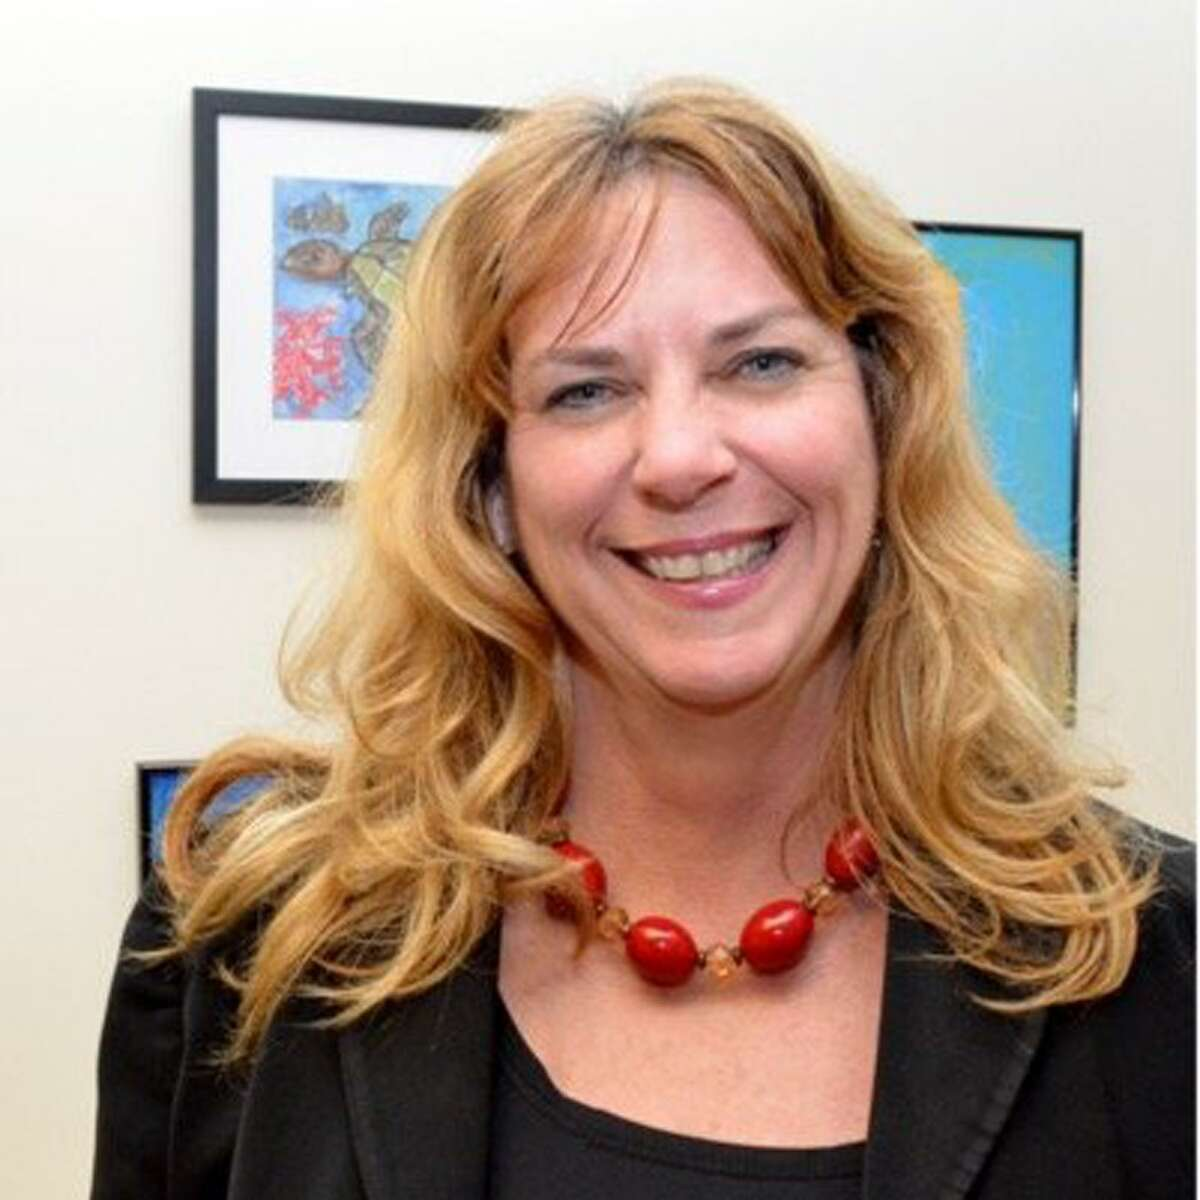 Greenwich Public Schools appointed Toni Jones of Fairfield, Conn. as its new superintendent of schools. Jones will leave Fairfield Public Schools, where she was superintendent for two years.